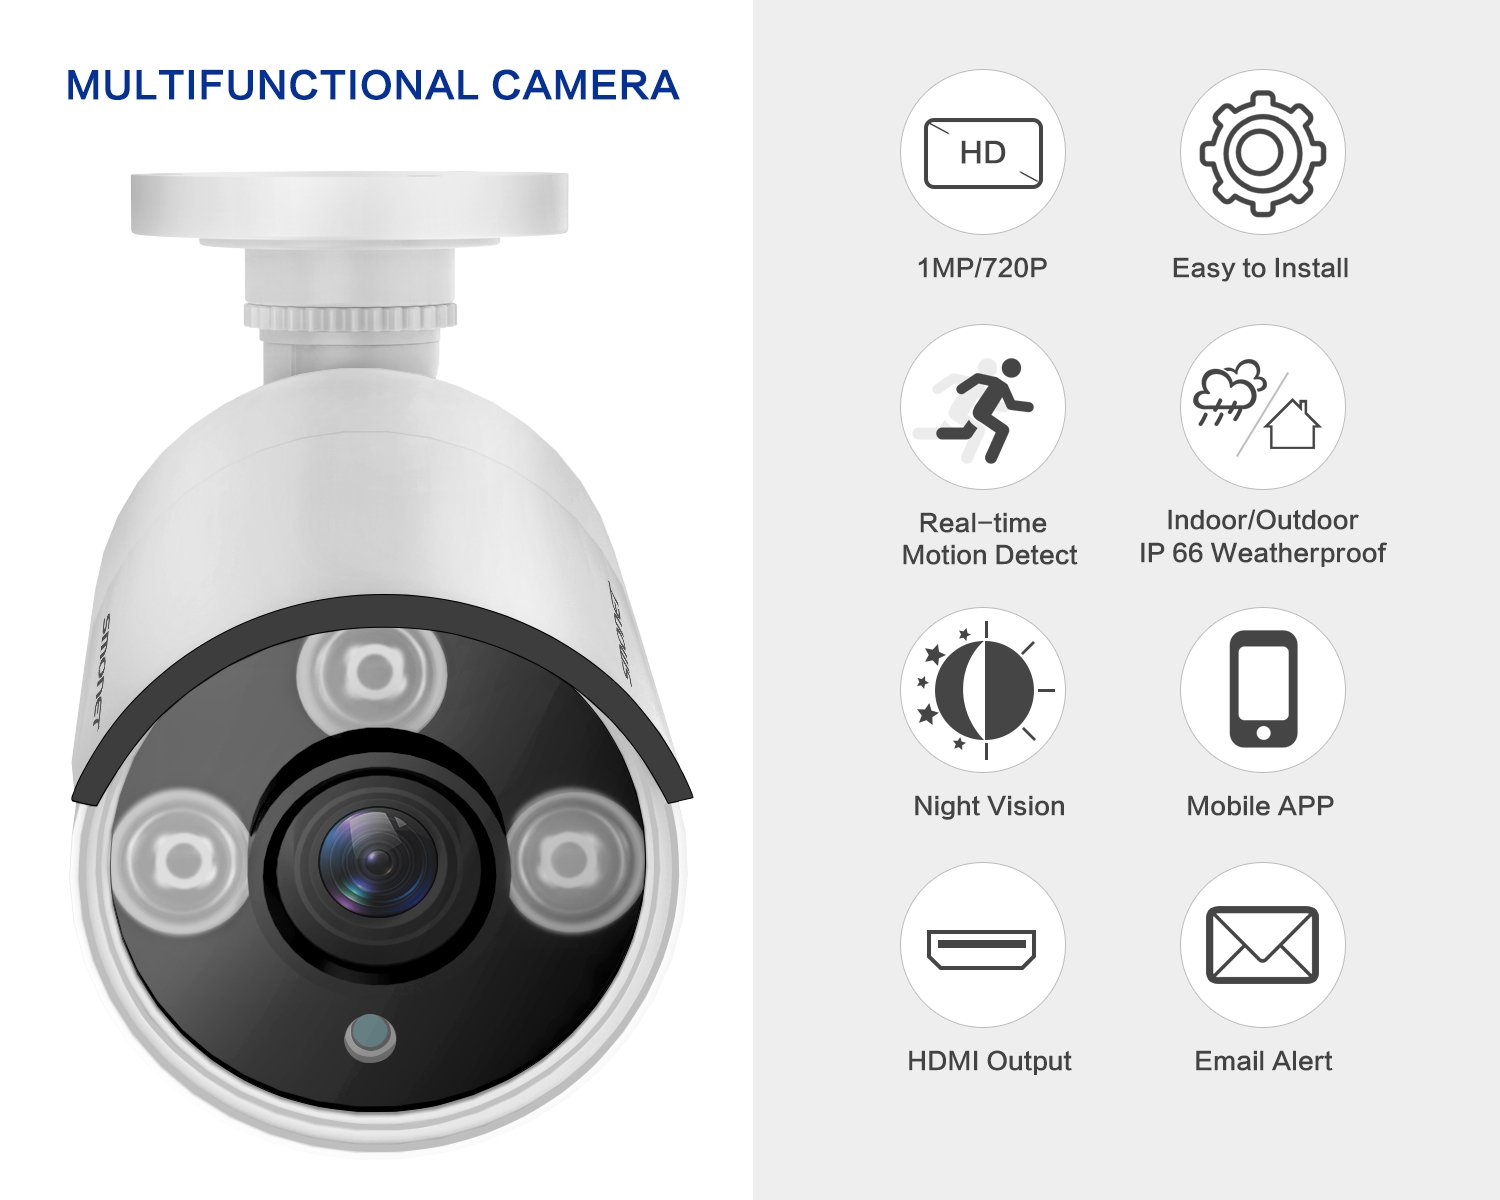 720P Wired Camera,SMONET 720P CCTV Camera, Waterproof Outdoor Indoor Bullet Camera with 3.6mm Lens High Resolution IR Cut 65Ft Night Vision,3pcs IR-LED Lights, No Power Supply